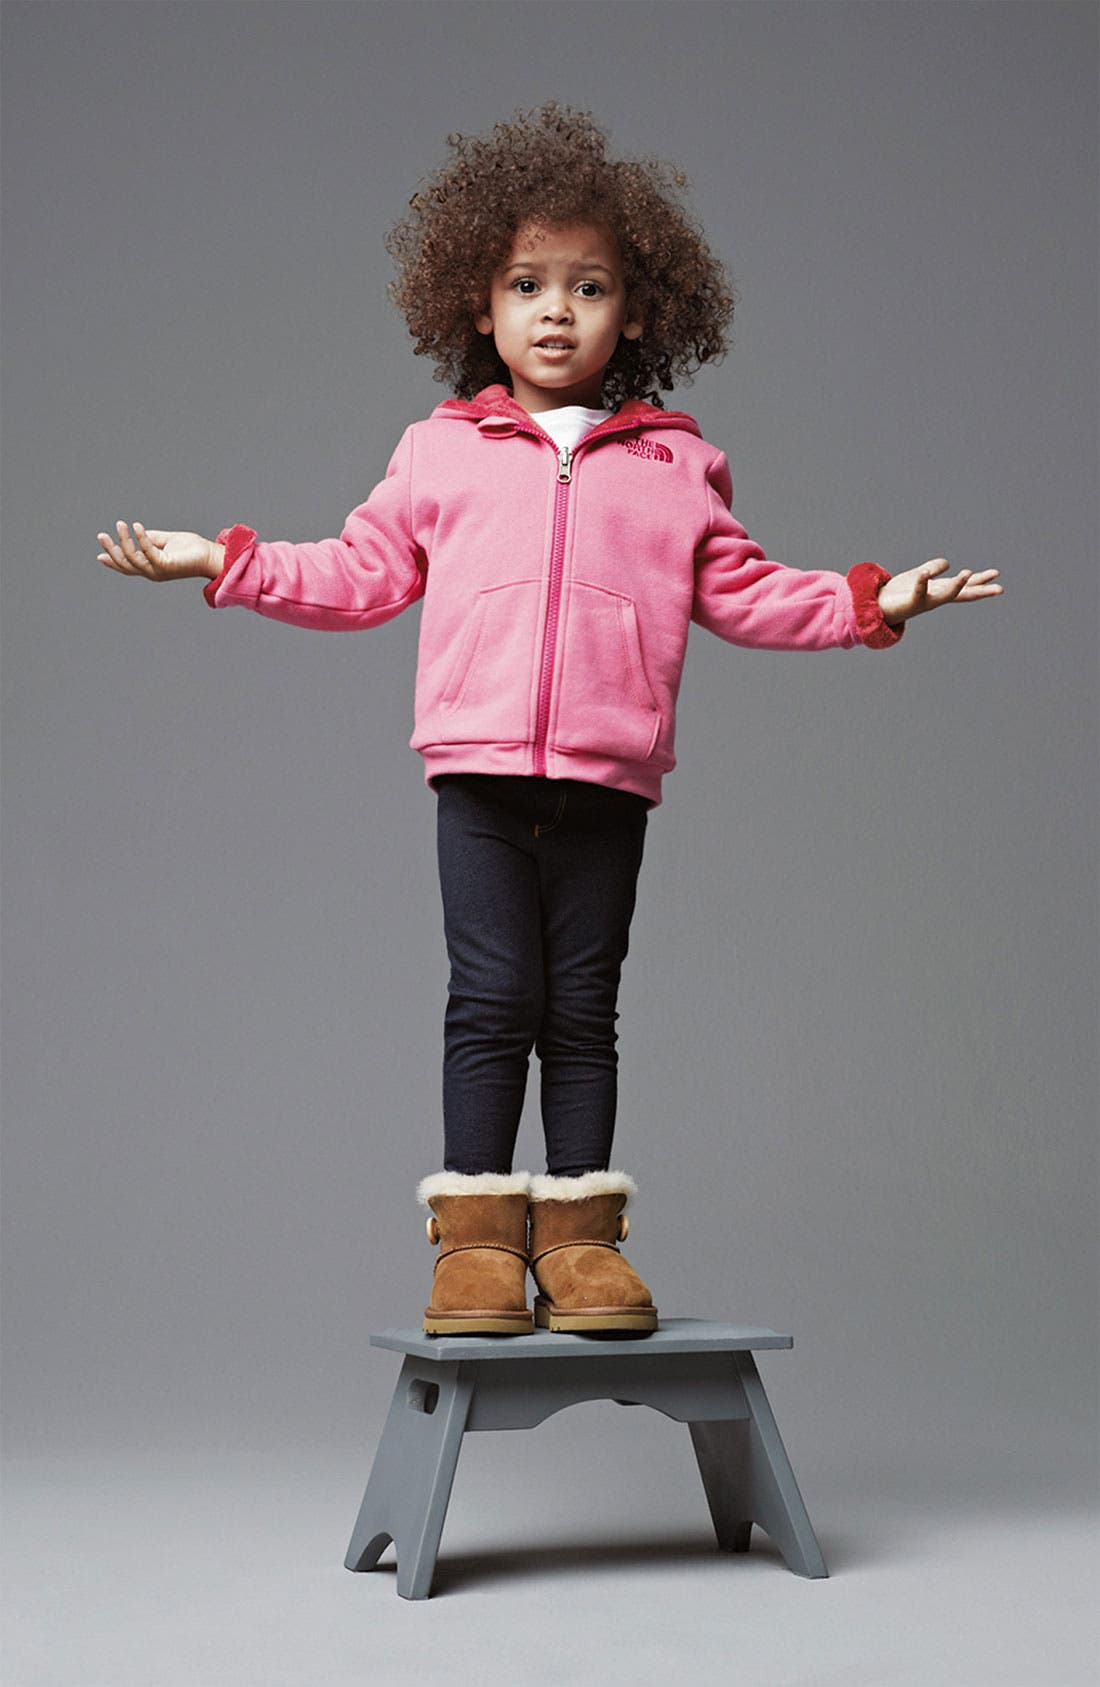 Alternate Image 1 Selected - The North Face Hoodie & True Religion Brand Jeans Skinny Jeans (Toddler)